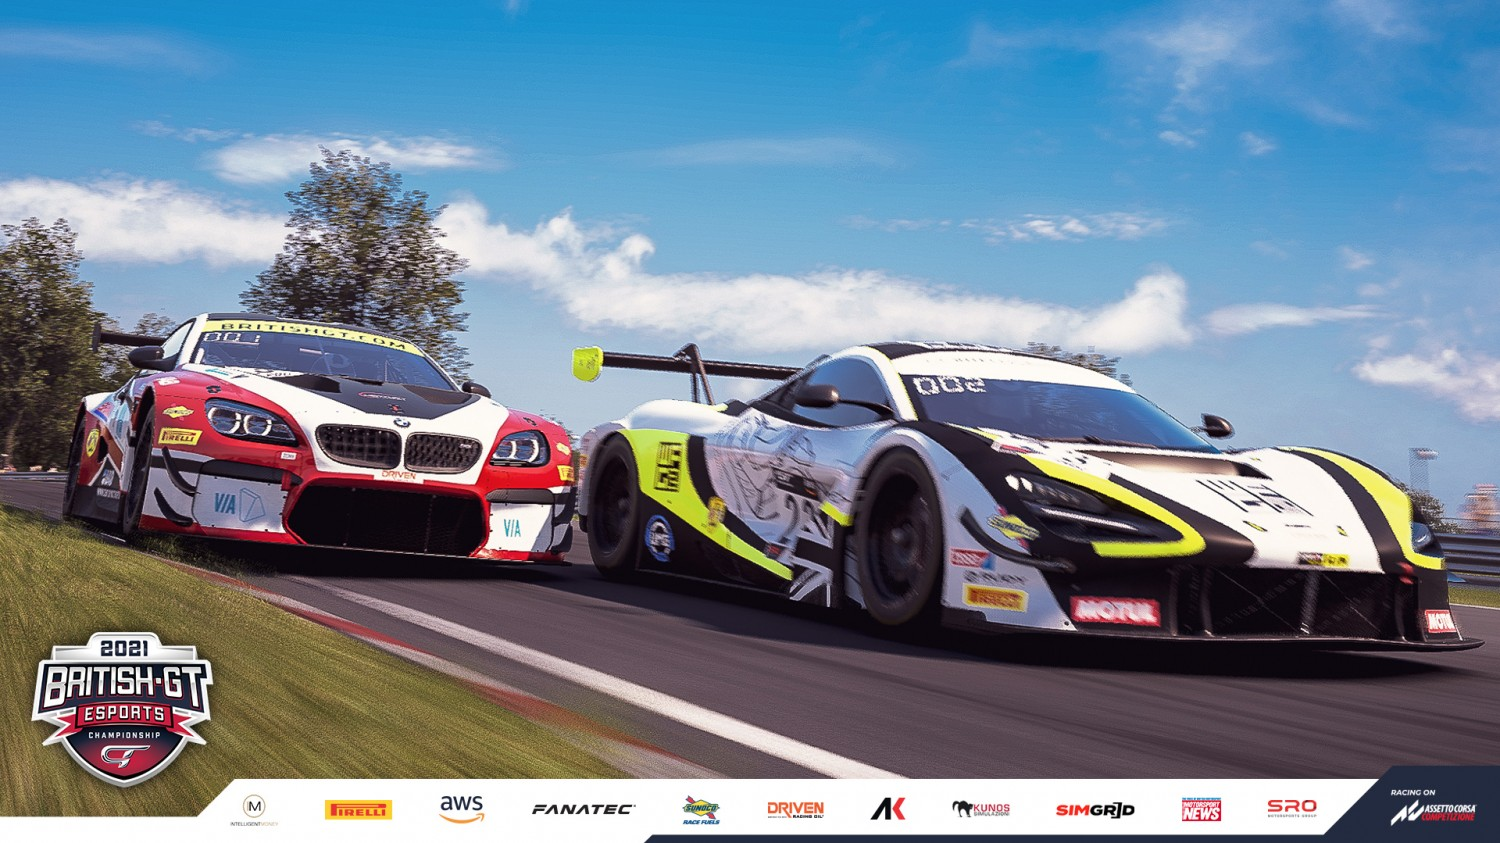 Esports Preview: Sim racers ready for Round 2 at Snetterton this Sunday